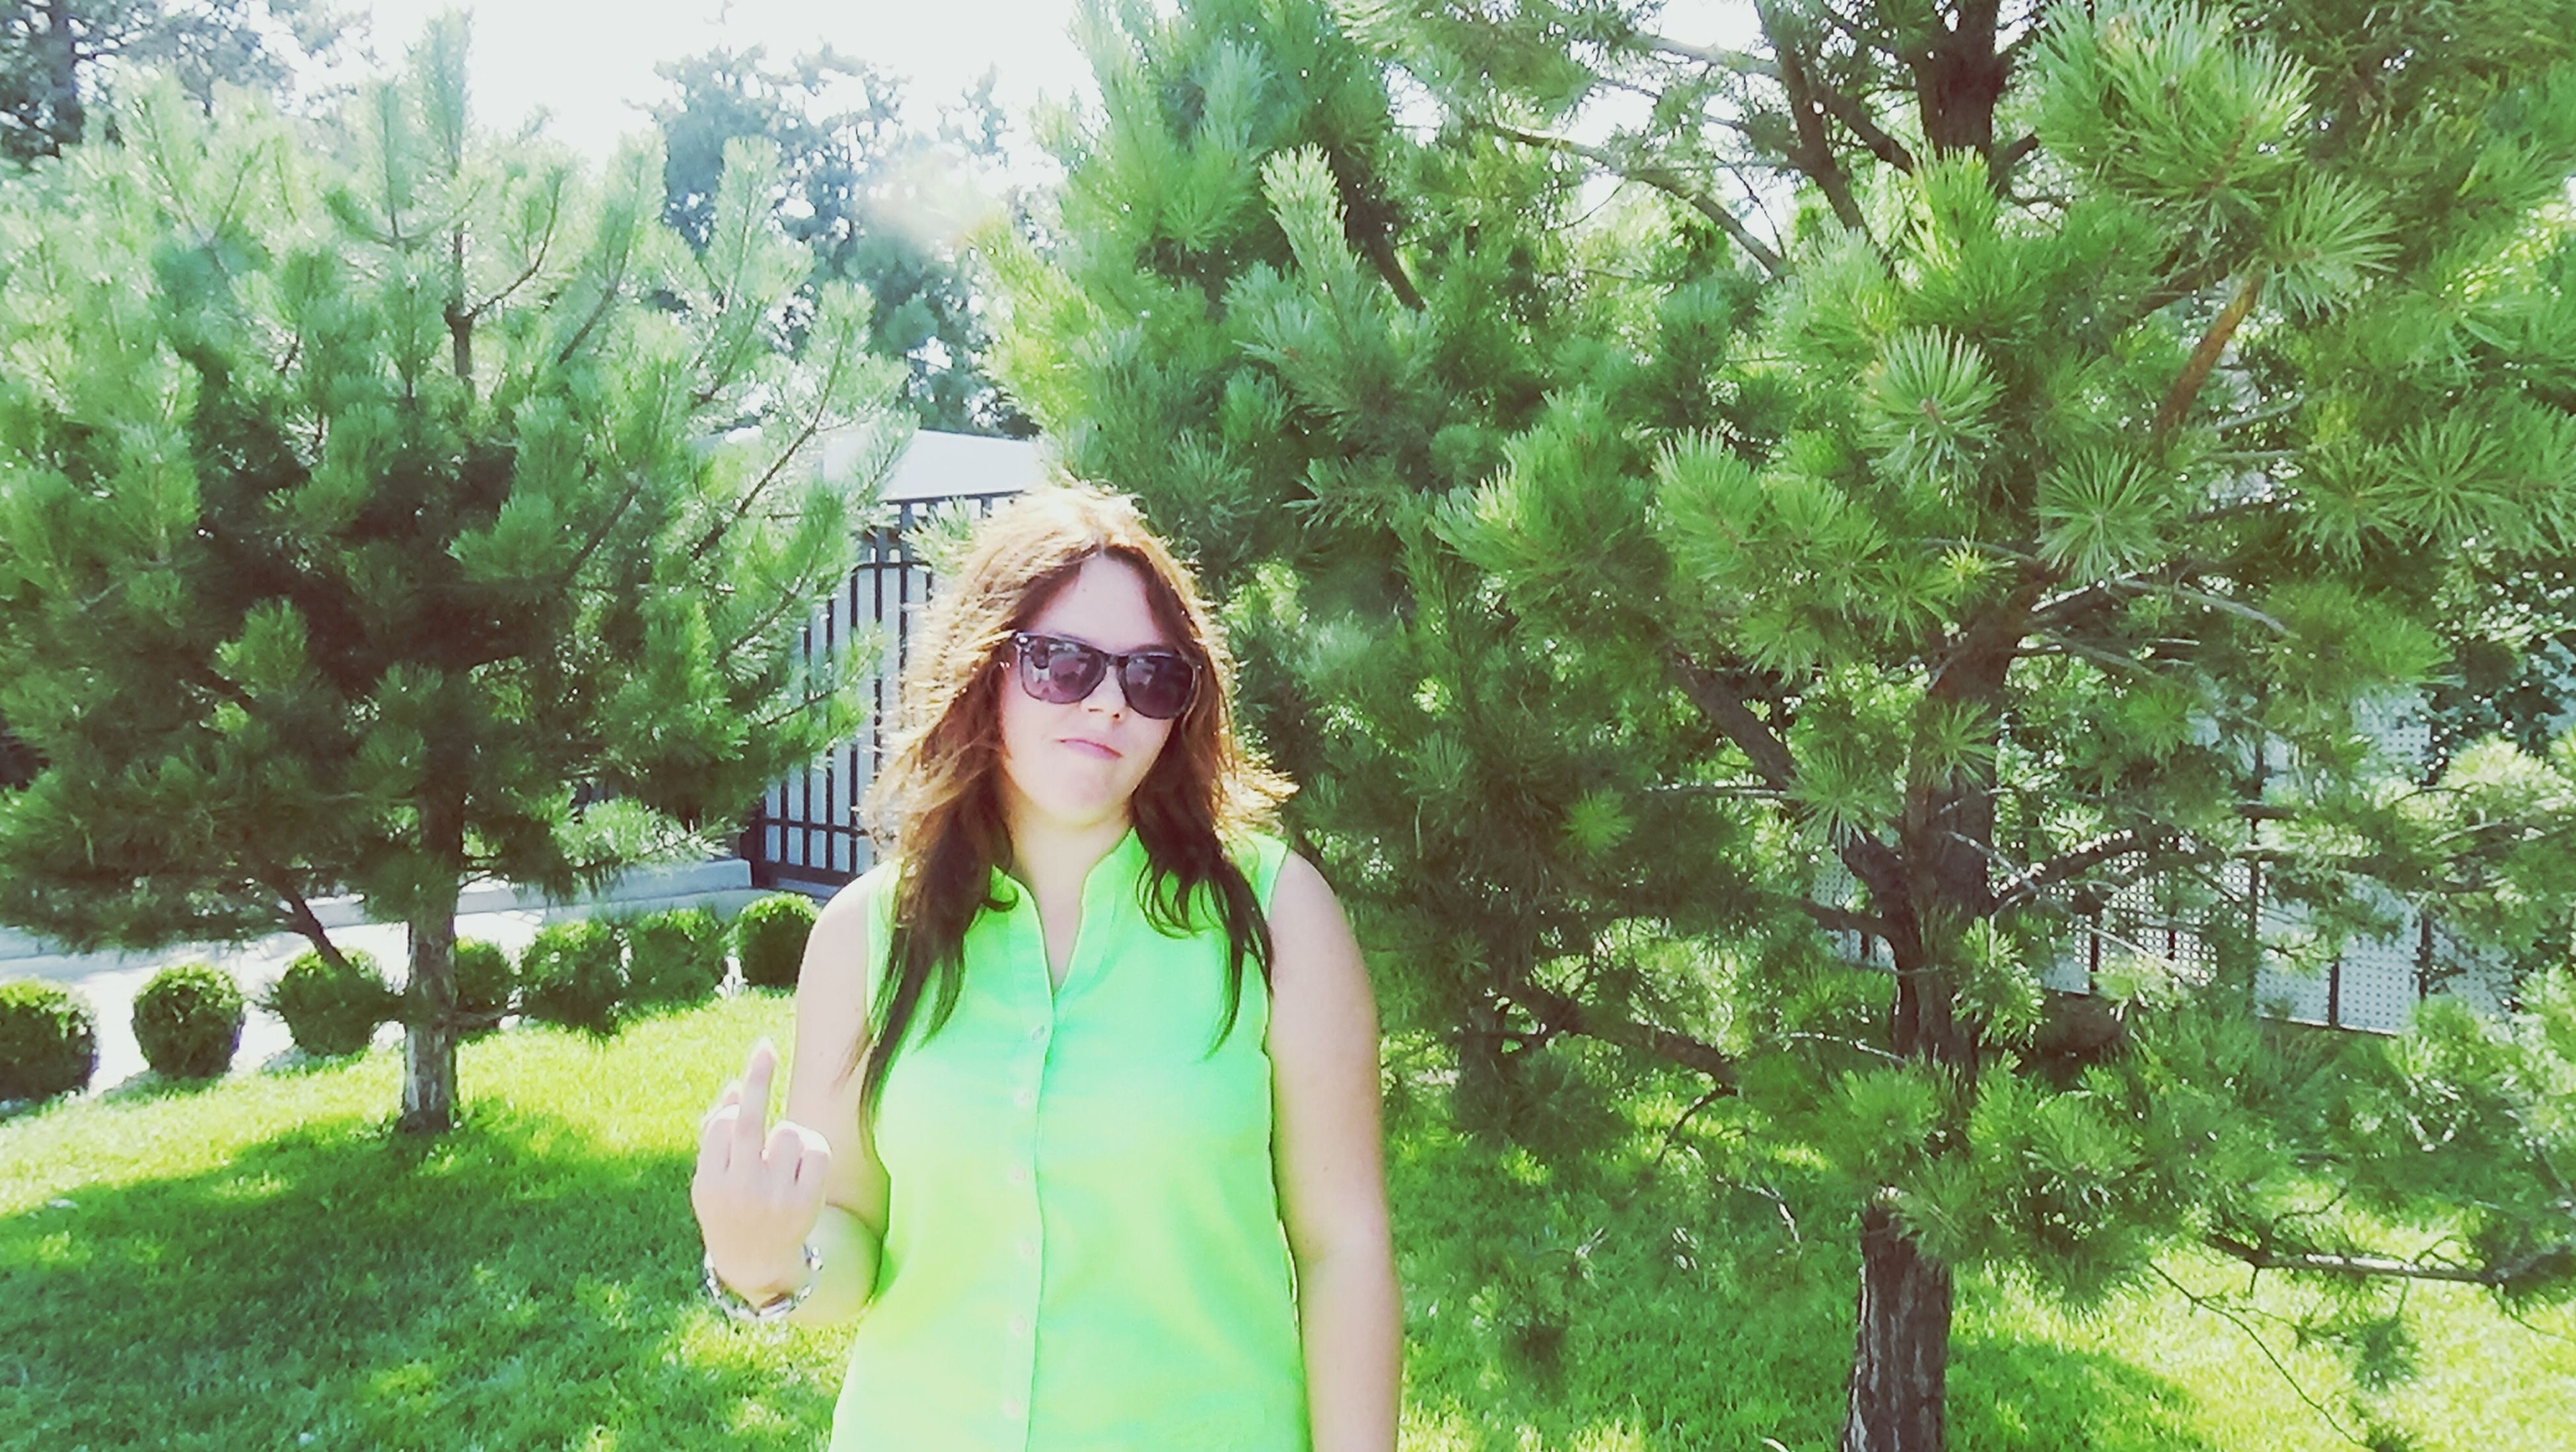 lifestyles, tree, young adult, leisure activity, person, young women, casual clothing, long hair, standing, growth, green color, waist up, three quarter length, front view, plant, looking at camera, park - man made space, smiling